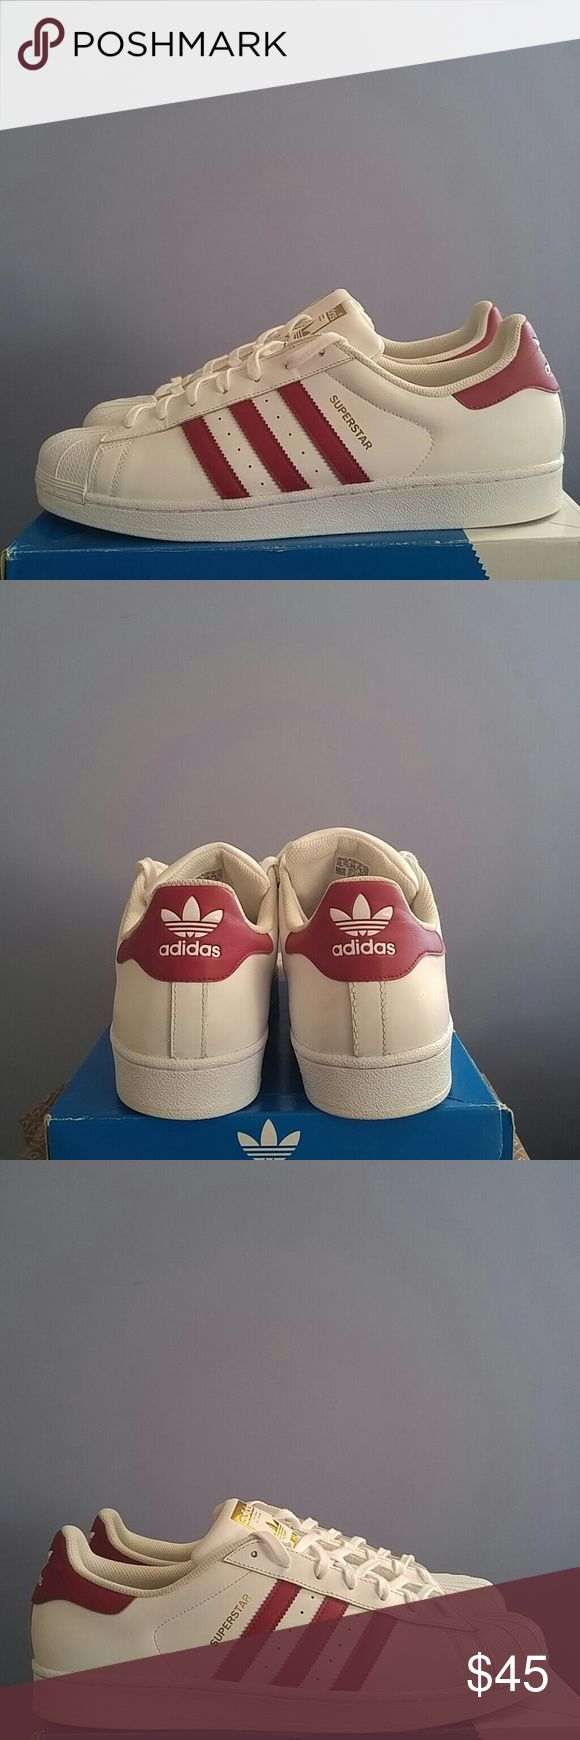 Adidas Superstar Shell Toe Maroon. Great condition/like new adidas Shoes Sneakers